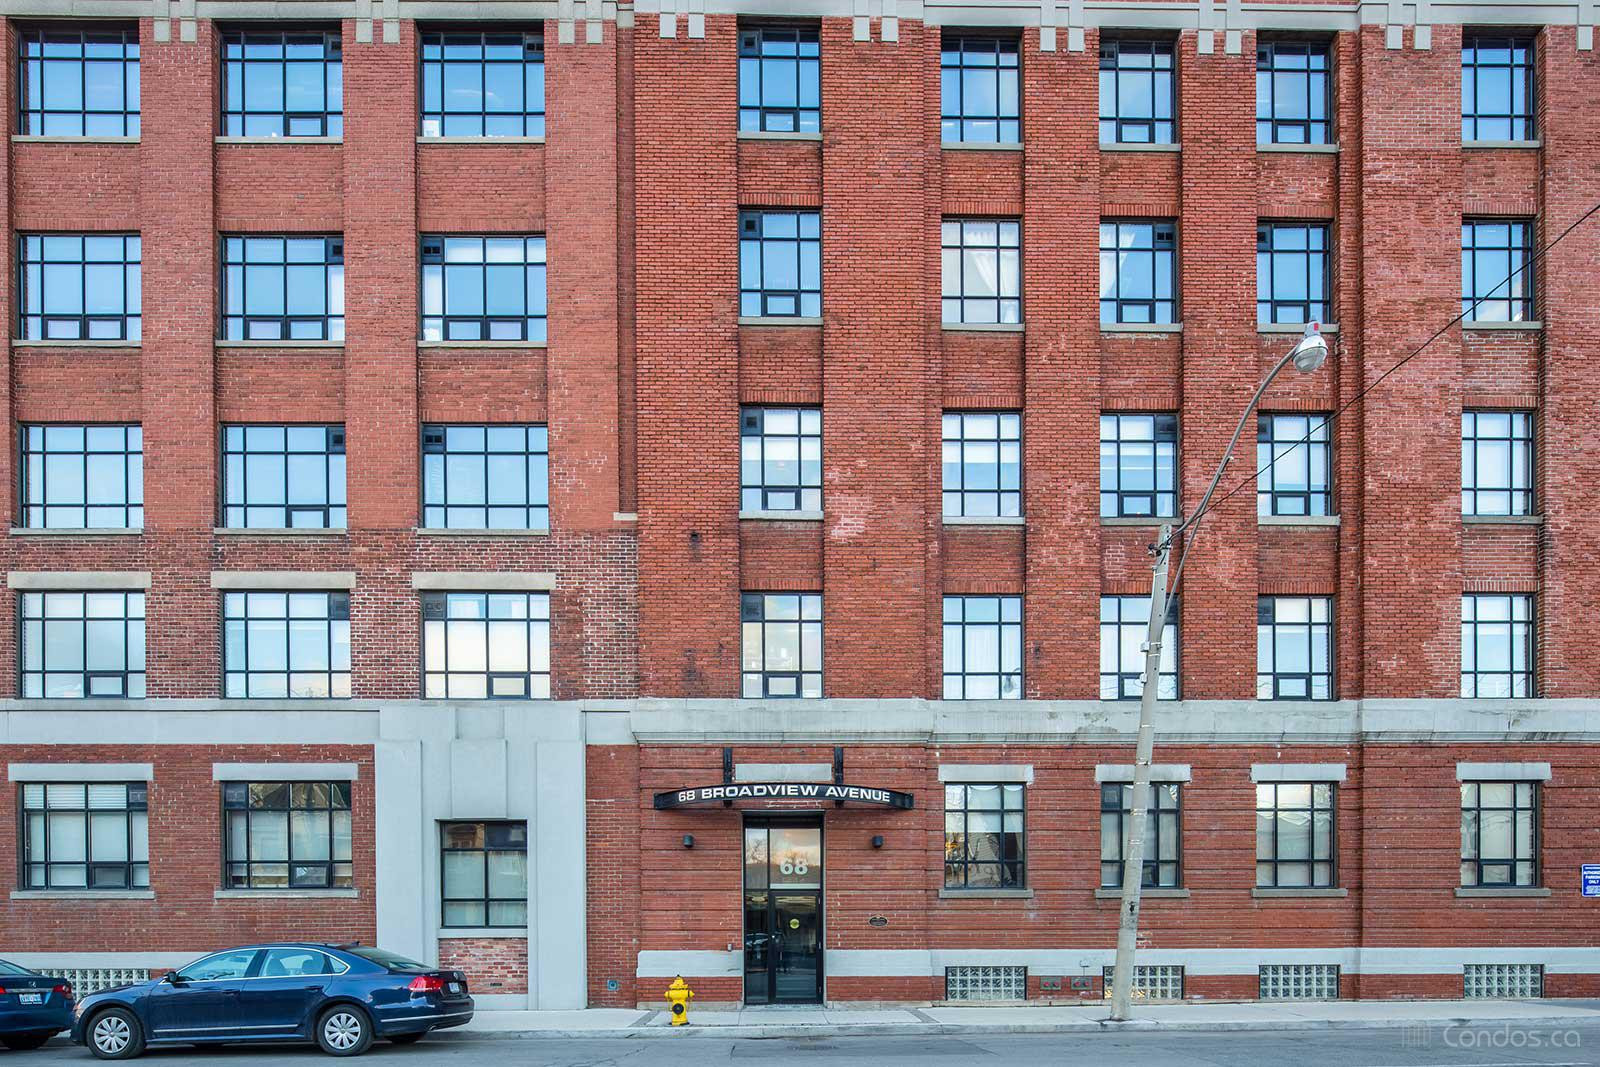 Broadview Lofts at 68 Broadview Ave, Toronto 1